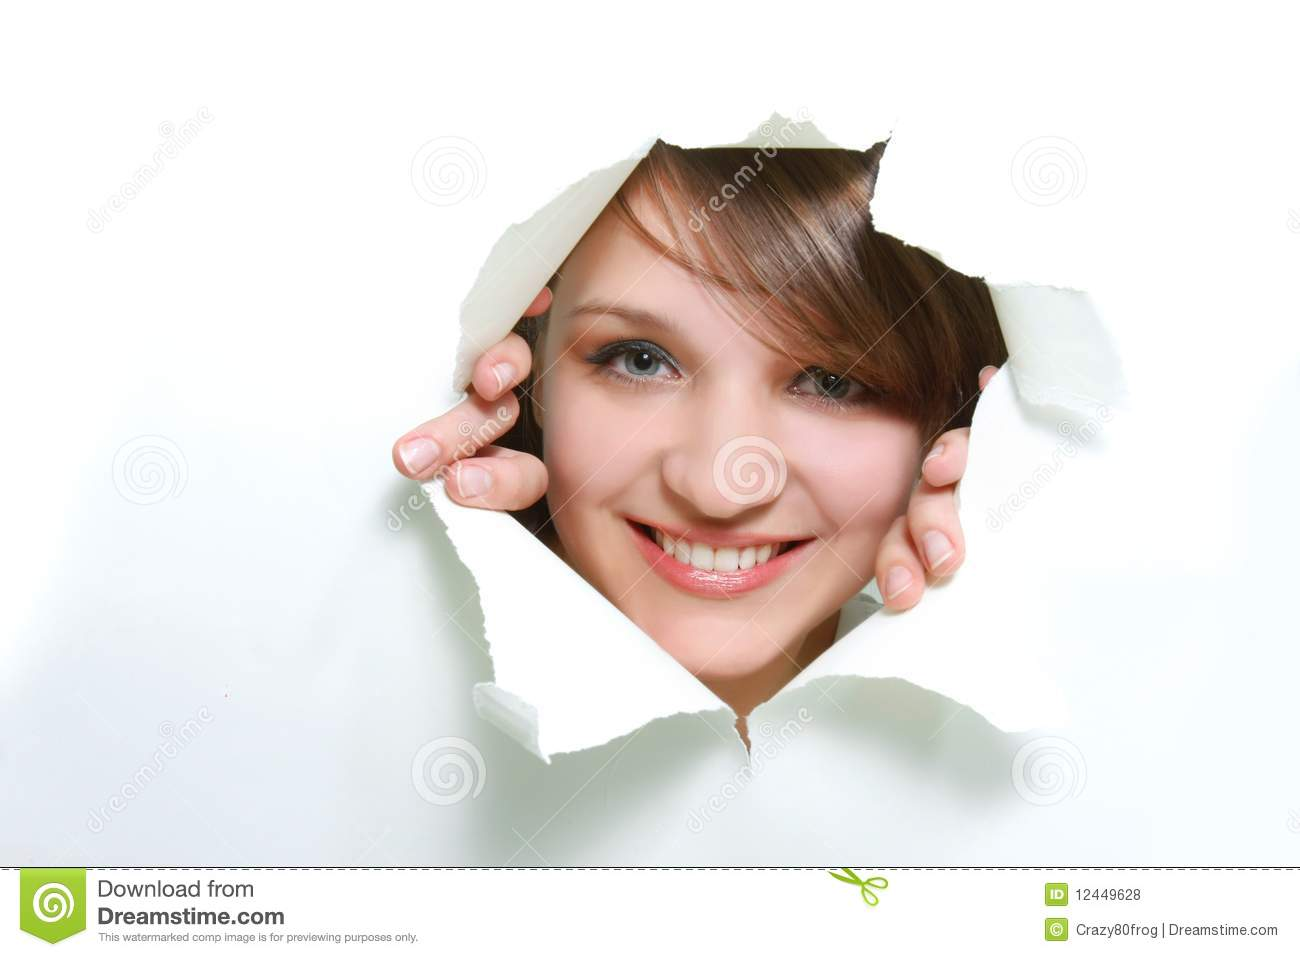 Girl peeping through hole in paper